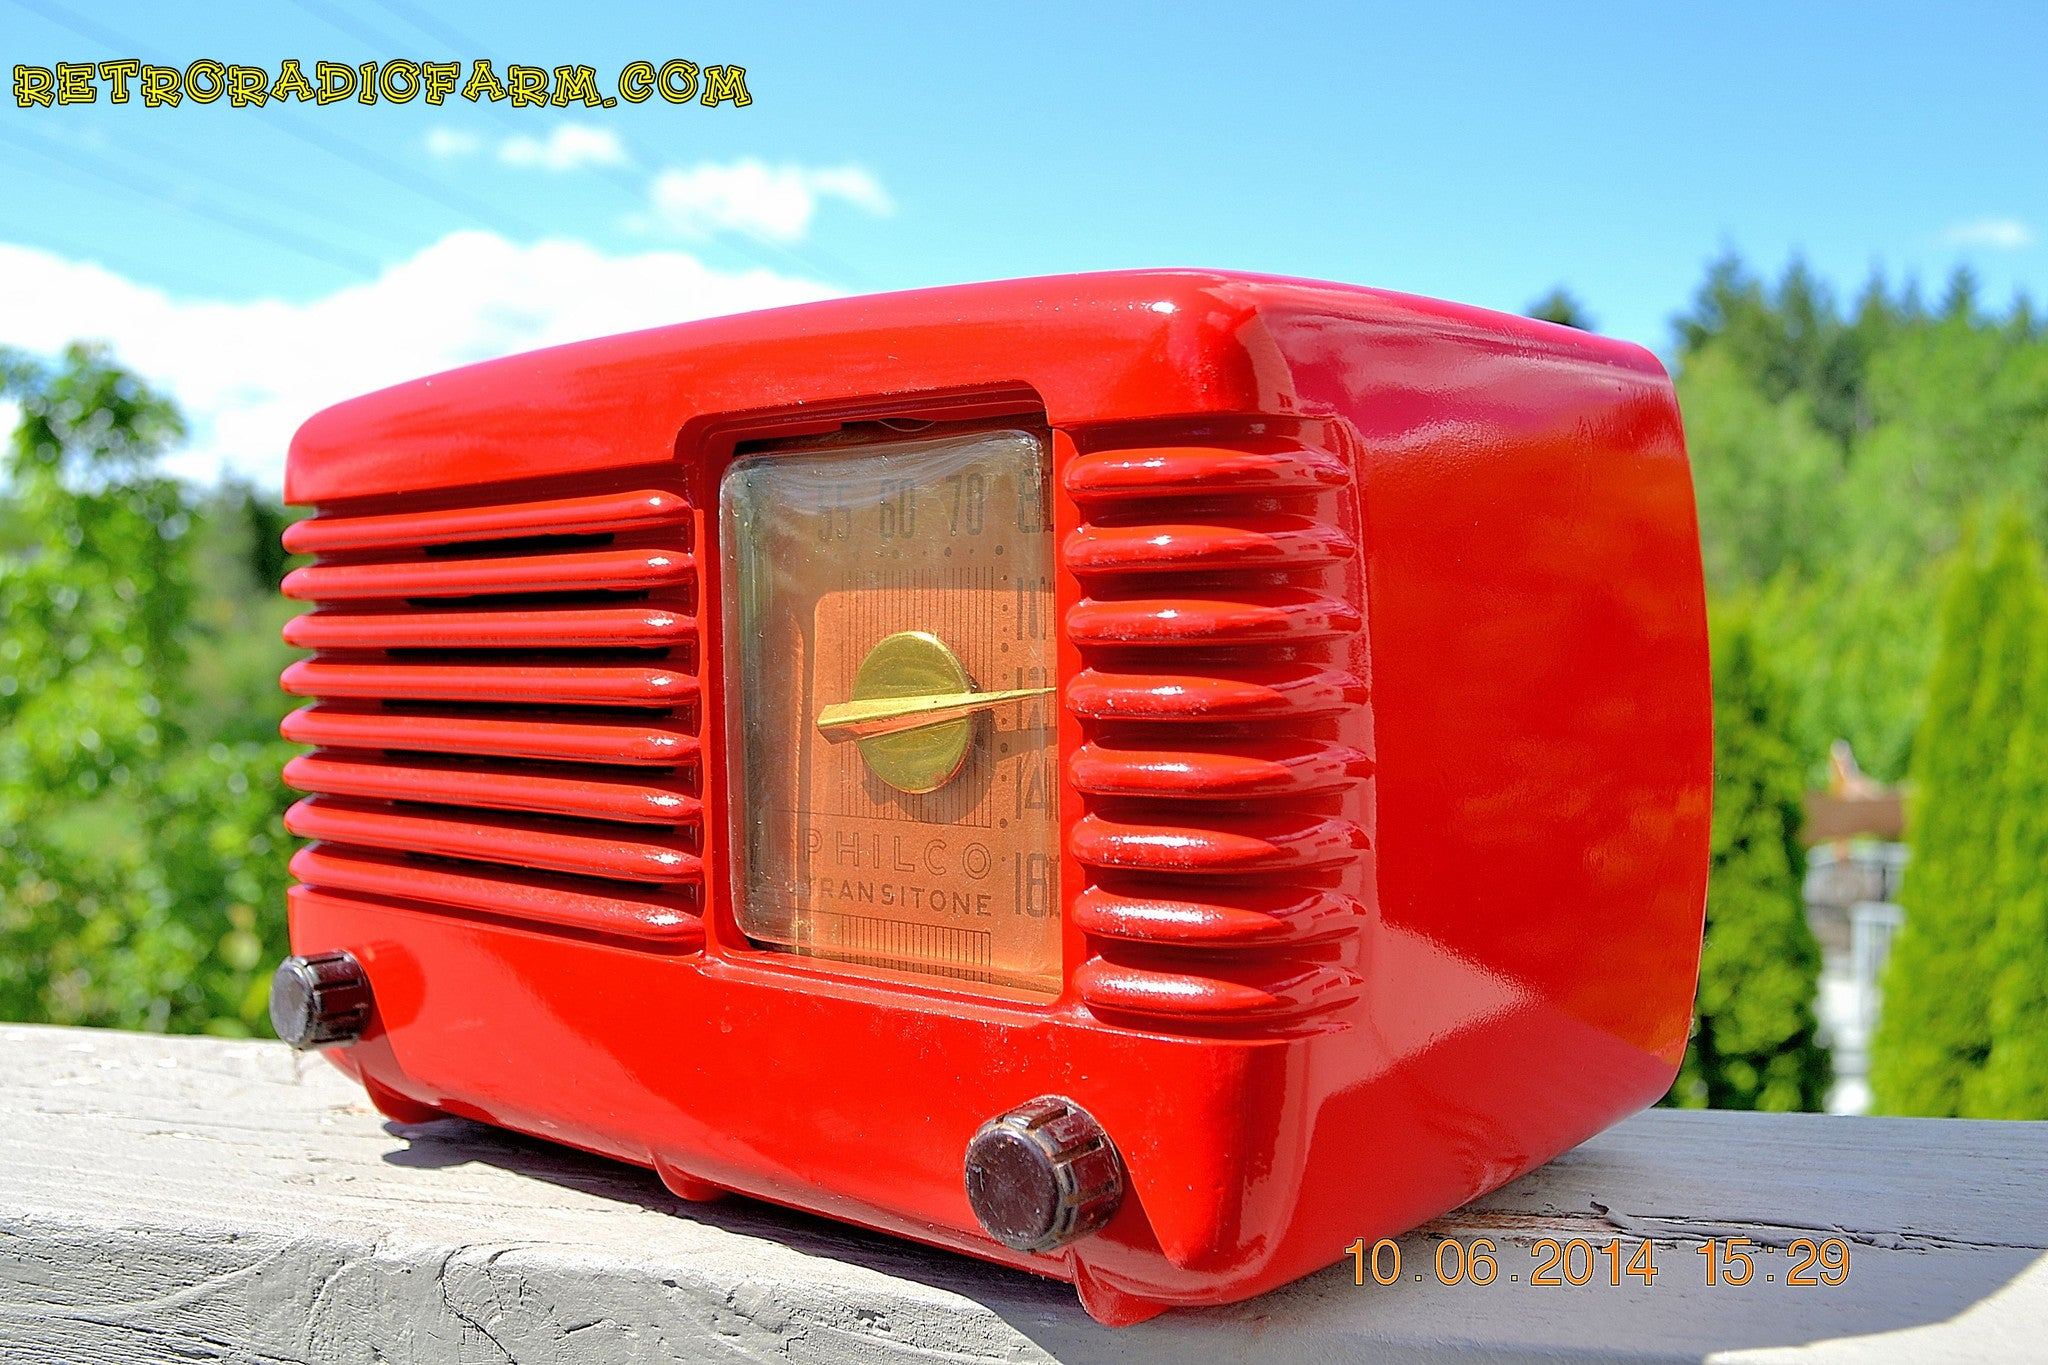 SOLD! - June 16, 2014 - LIPSTICK RED Vintage Deco Retro 1949 Philco Transitone 49-500 AM Bakelite Tube Radio Works! Wow! - [product_type} - Admiral - Retro Radio Farm